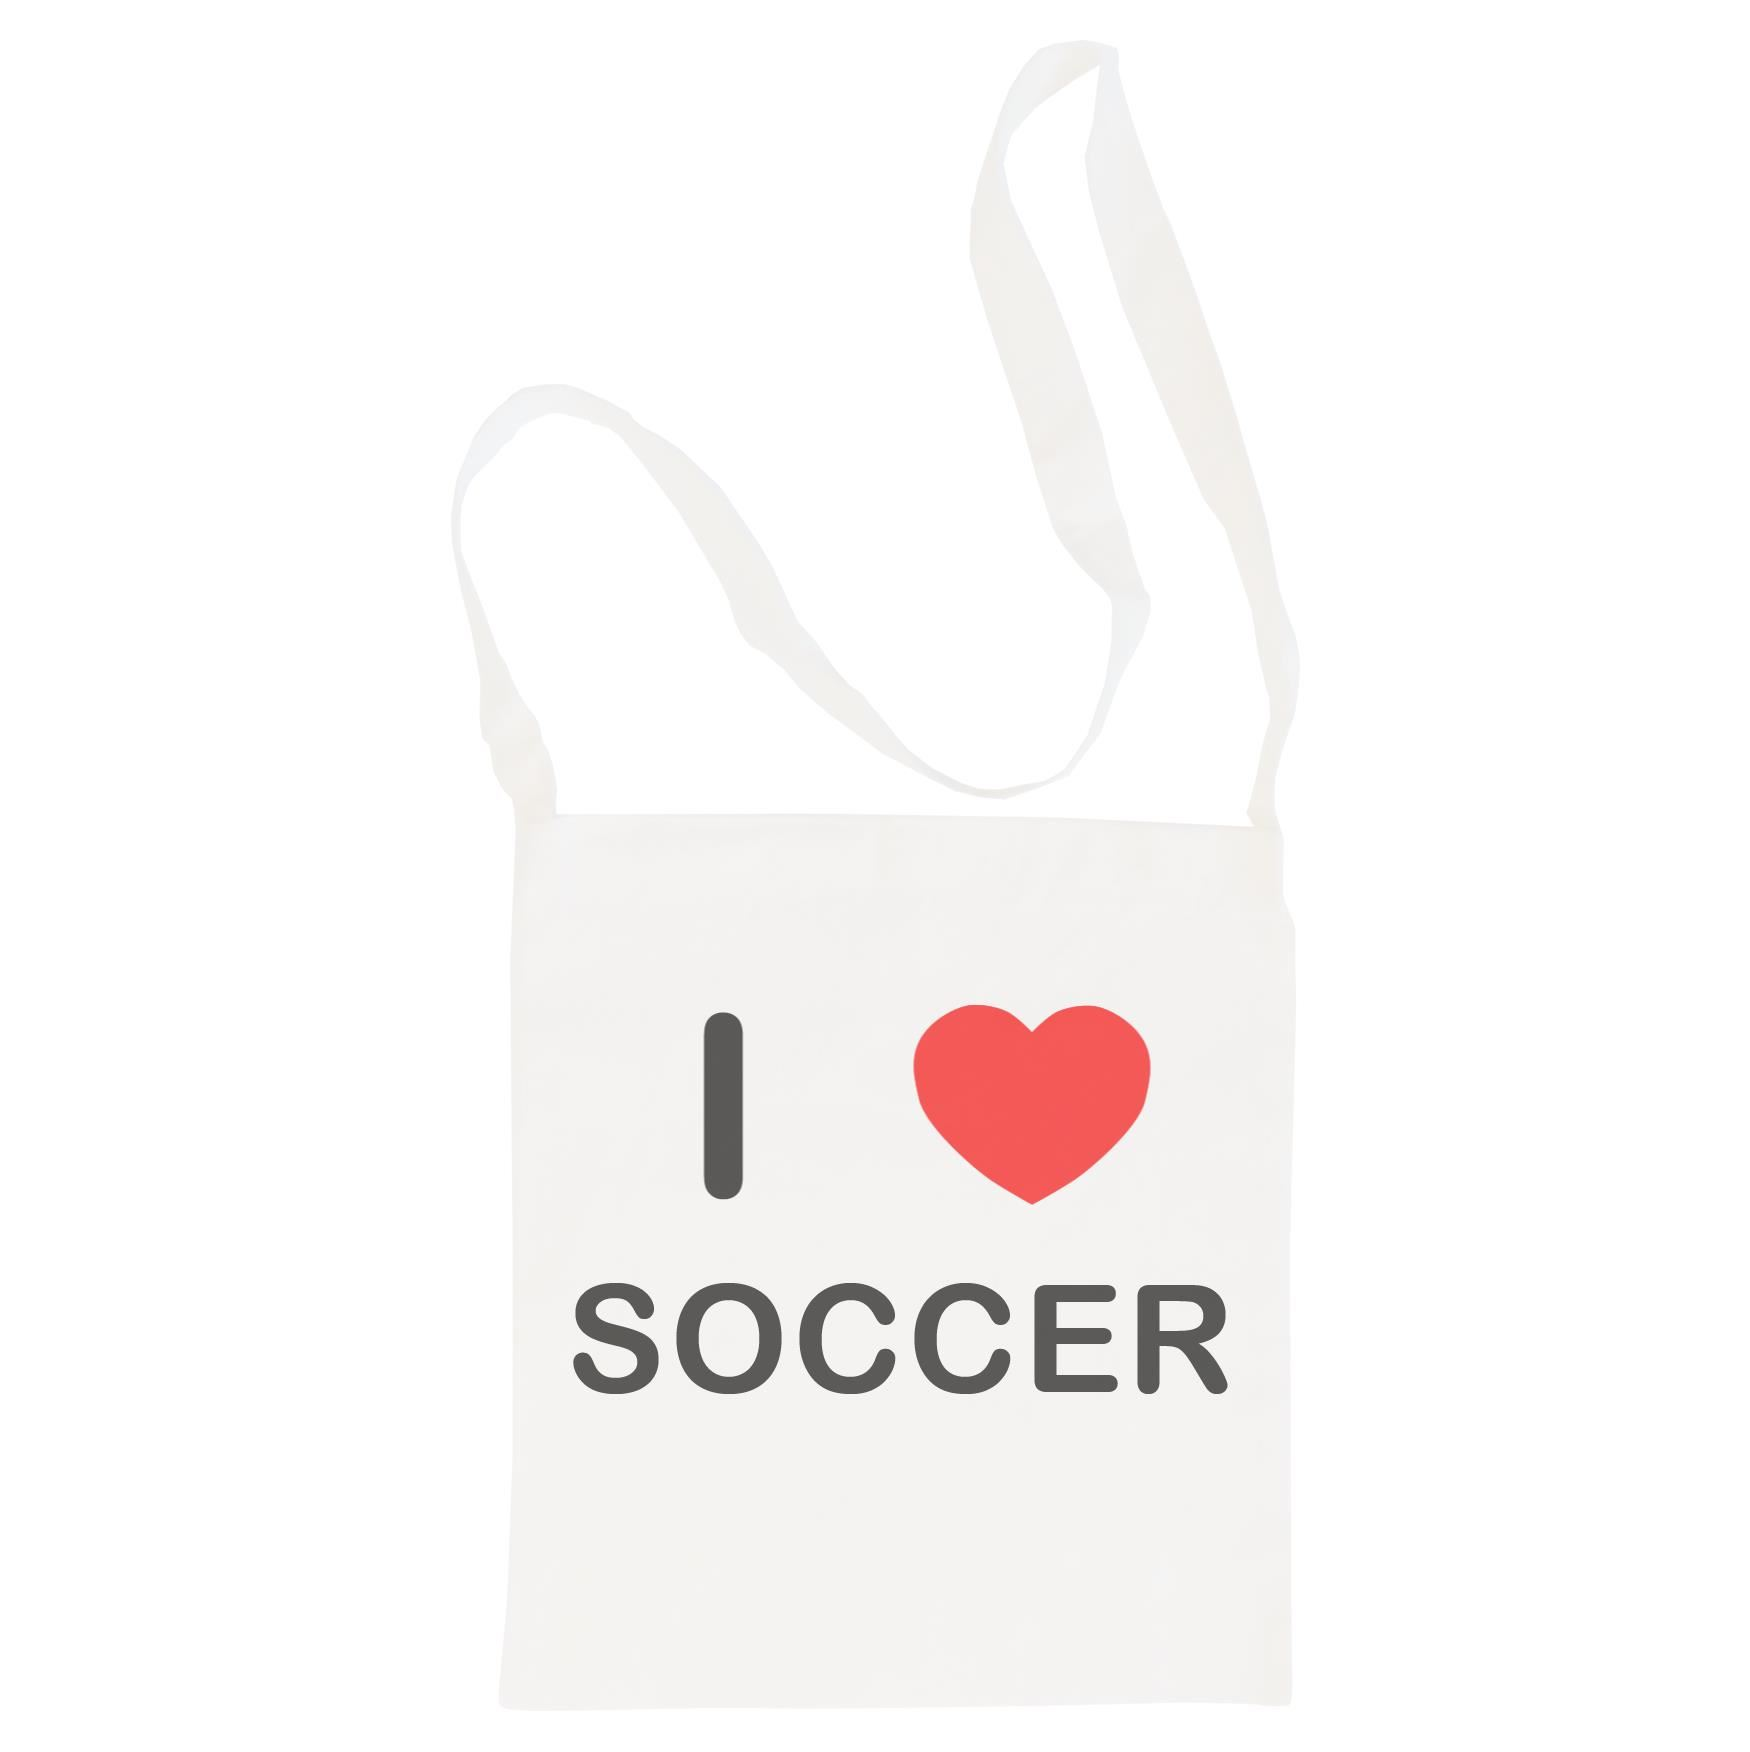 I Love Soccer - Cotton Bag | Size choice Tote, Shopper or Sling